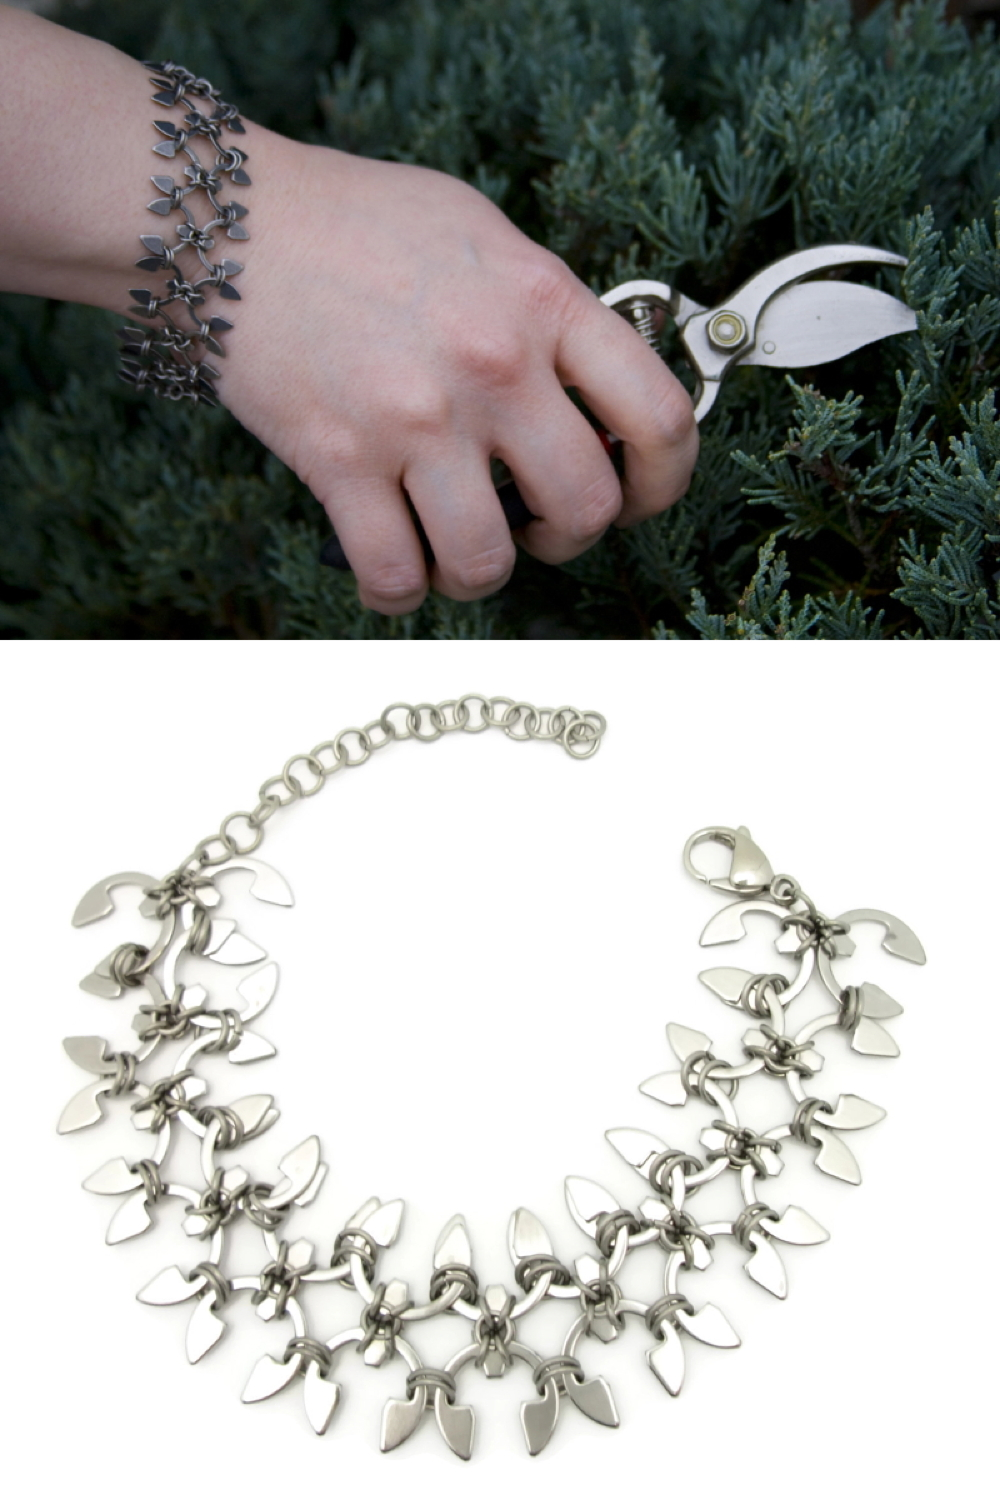 Compiled image: a photo of a hand holding pruners in front of an evergreen, wearing Wraptillion's Wisteria Bracelet, above the bracelet curved into a circle.